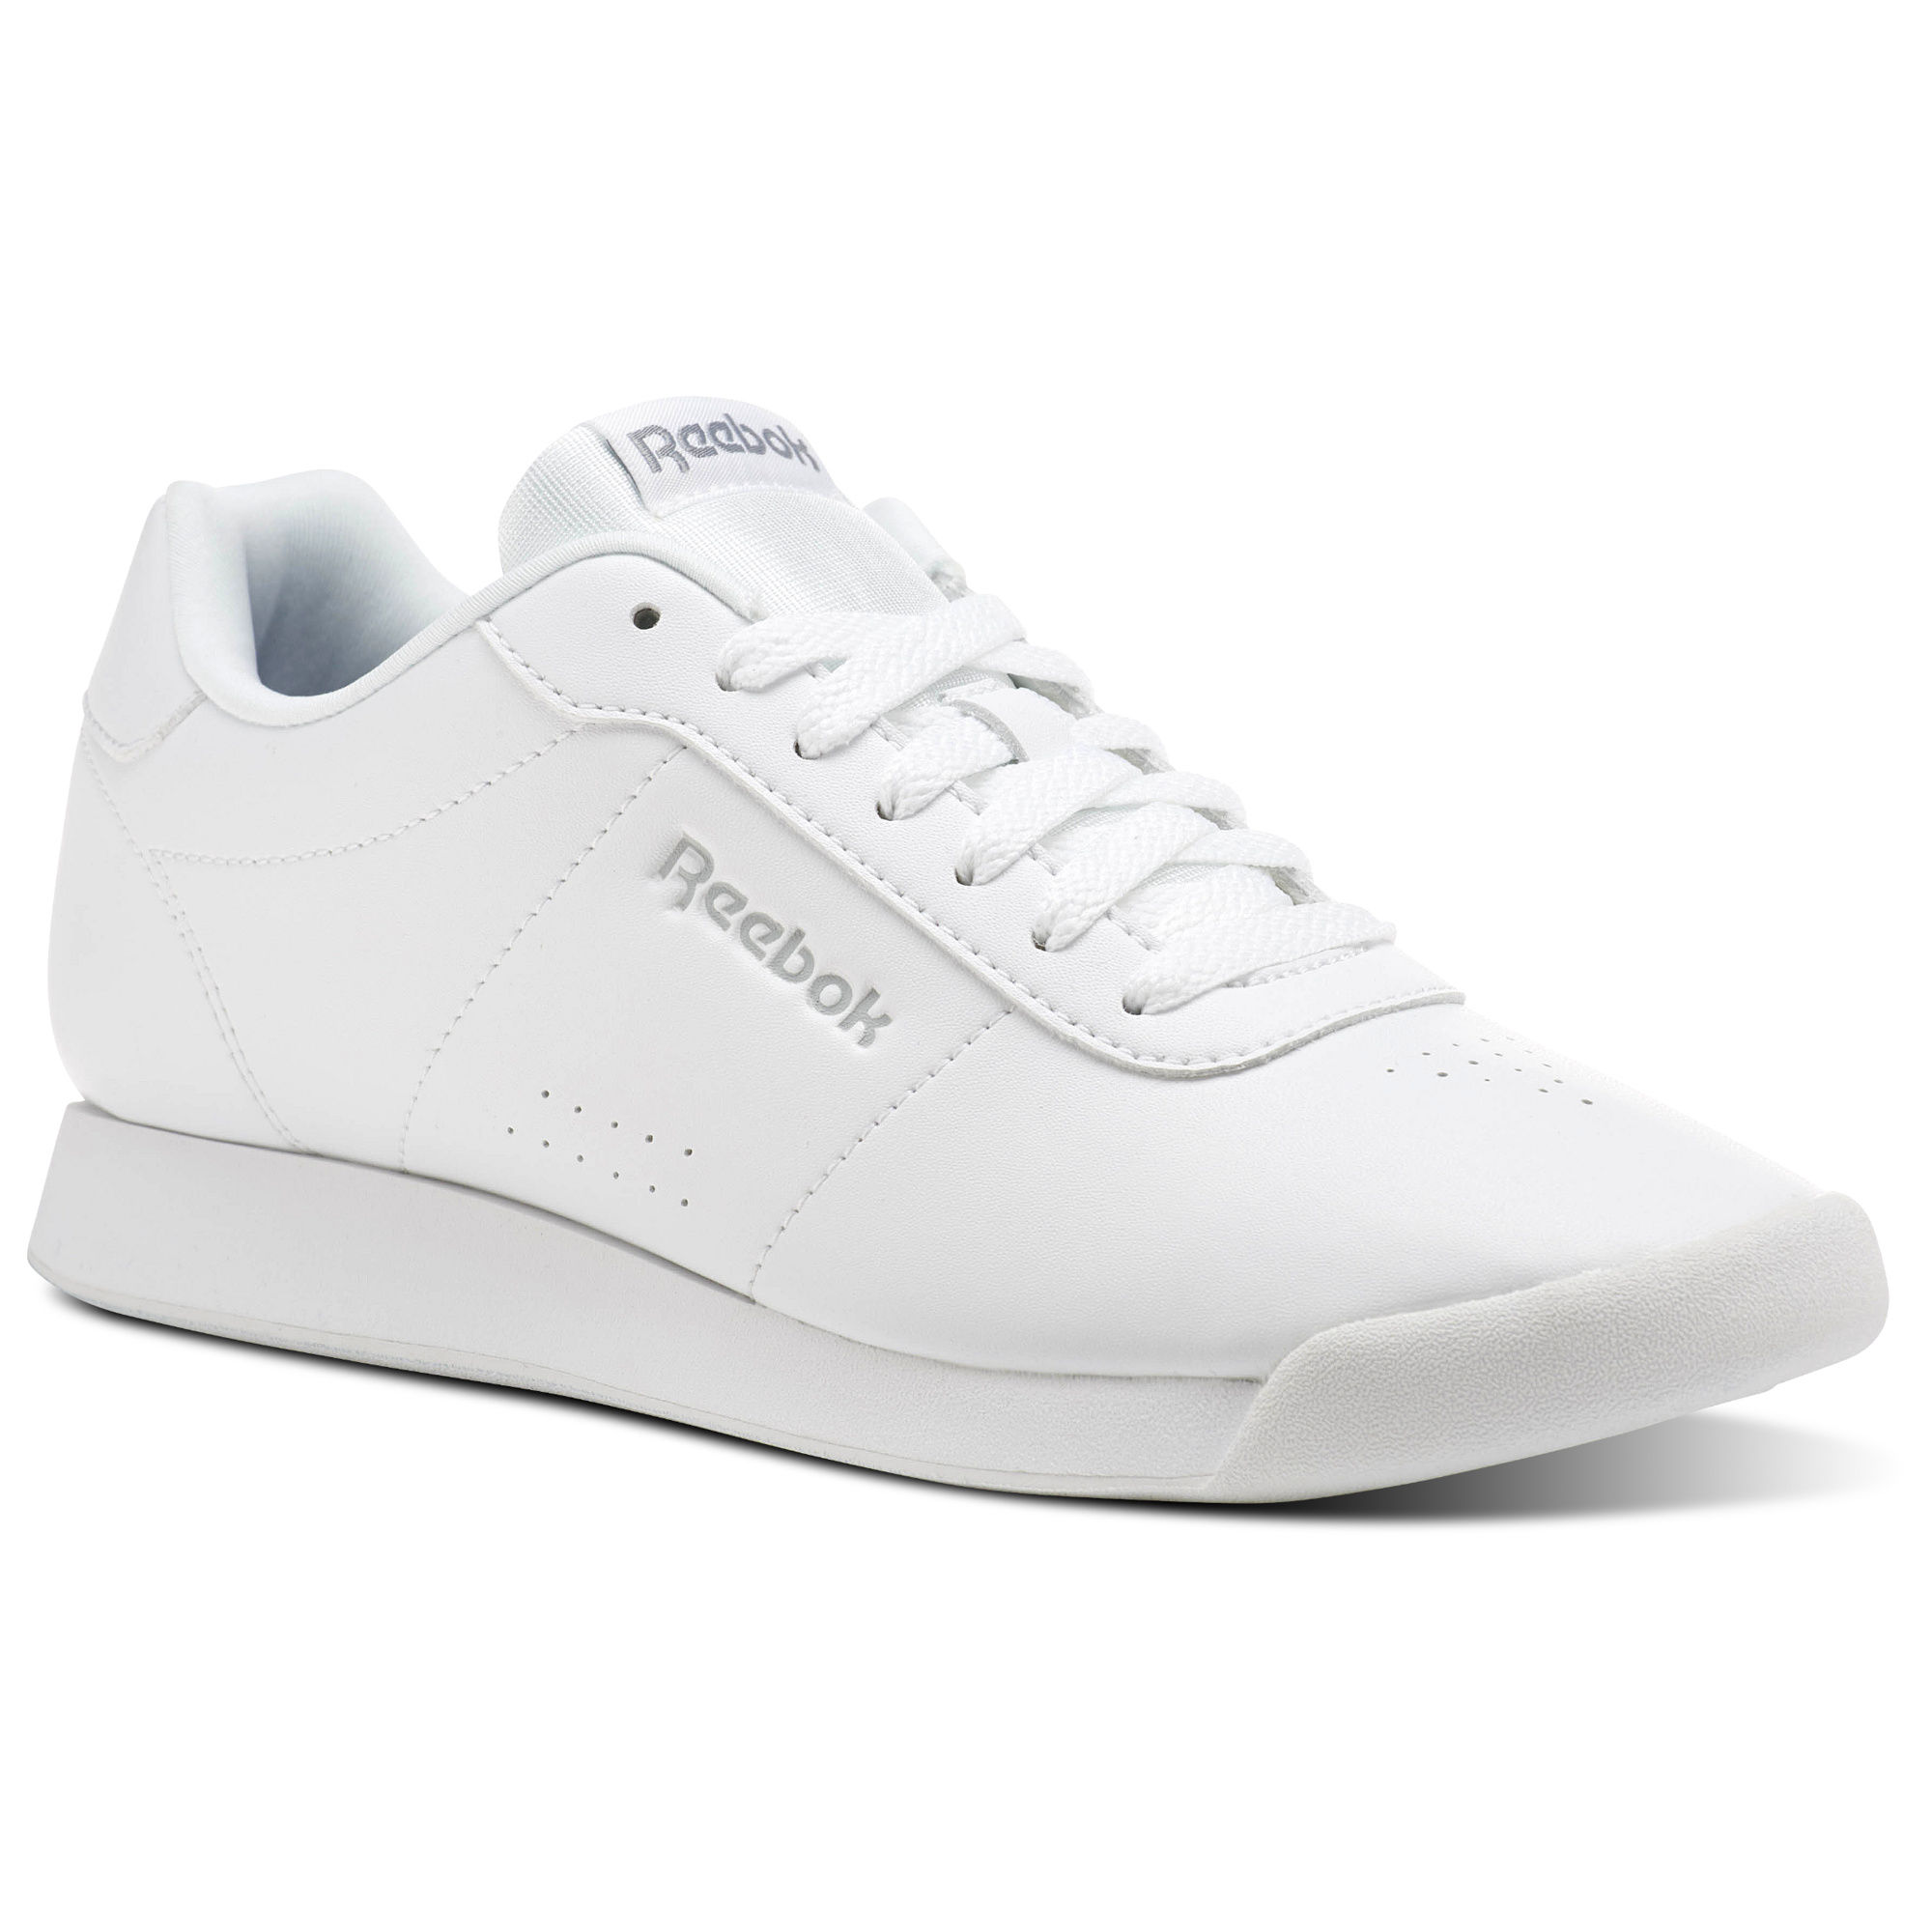 Reebok Royal Charm Womens White/Grey Sneakers (551VQKTN) - Click Image to Close